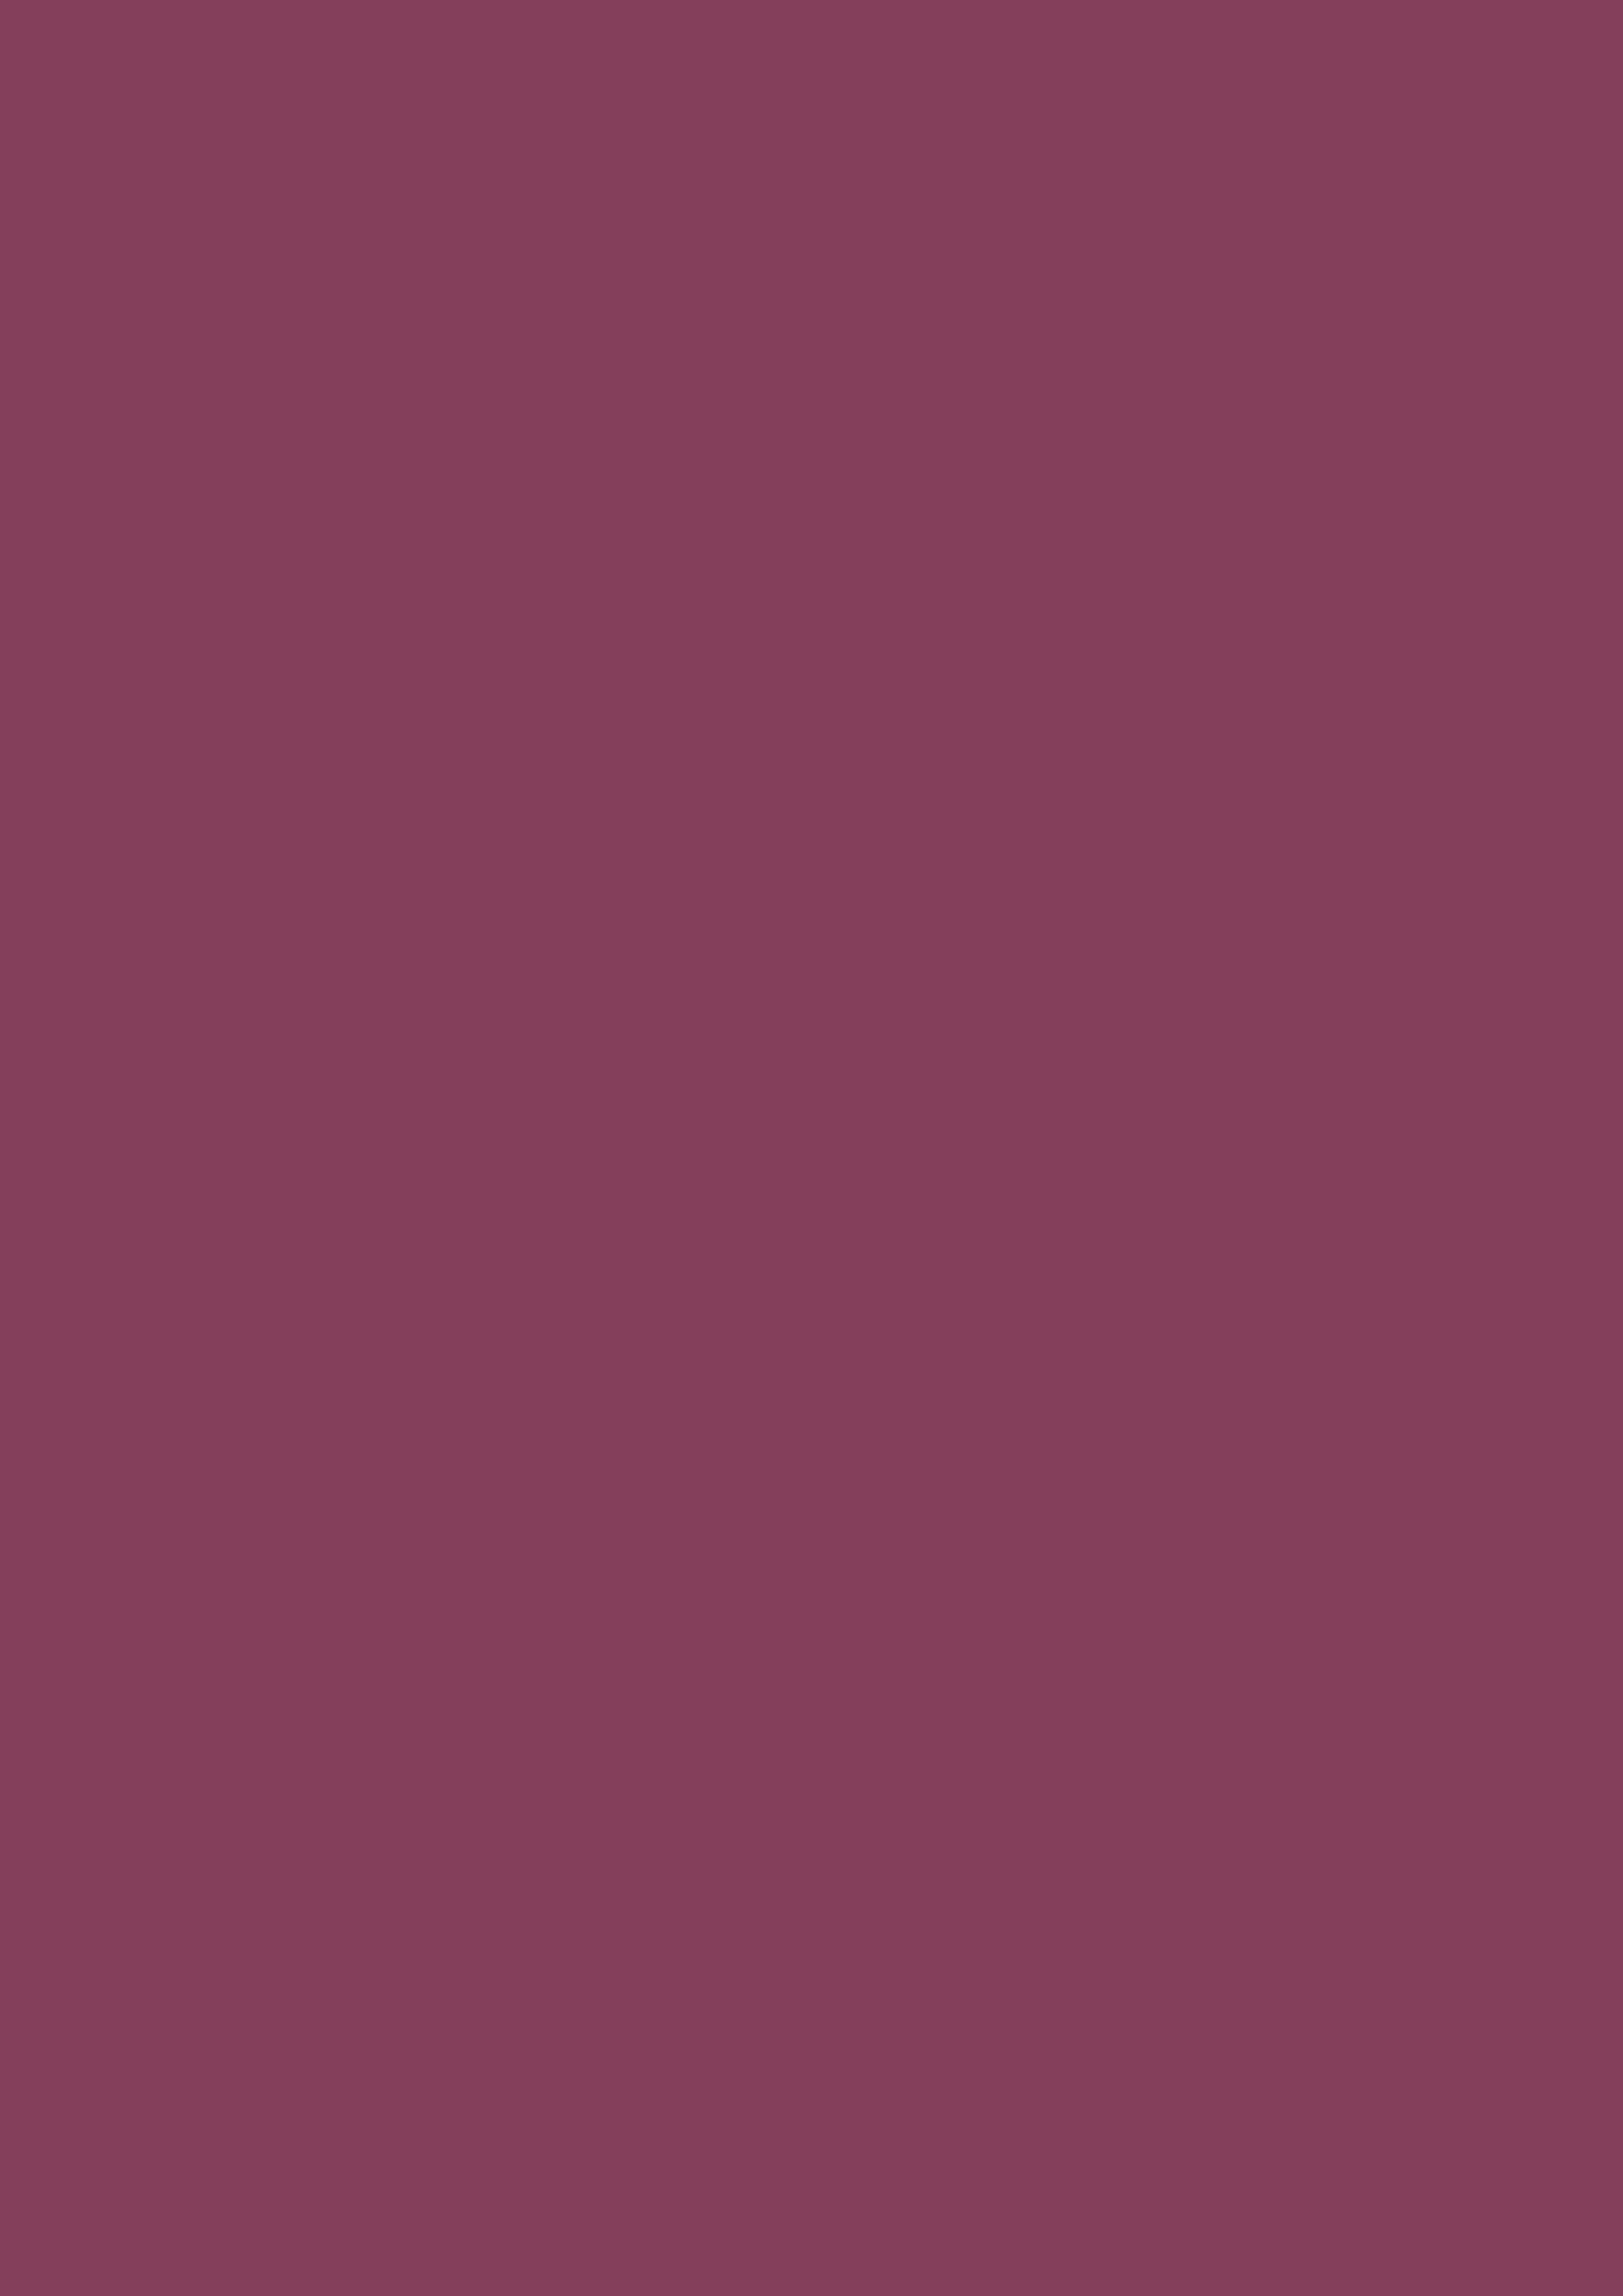 2480x3508 Deep Ruby Solid Color Background